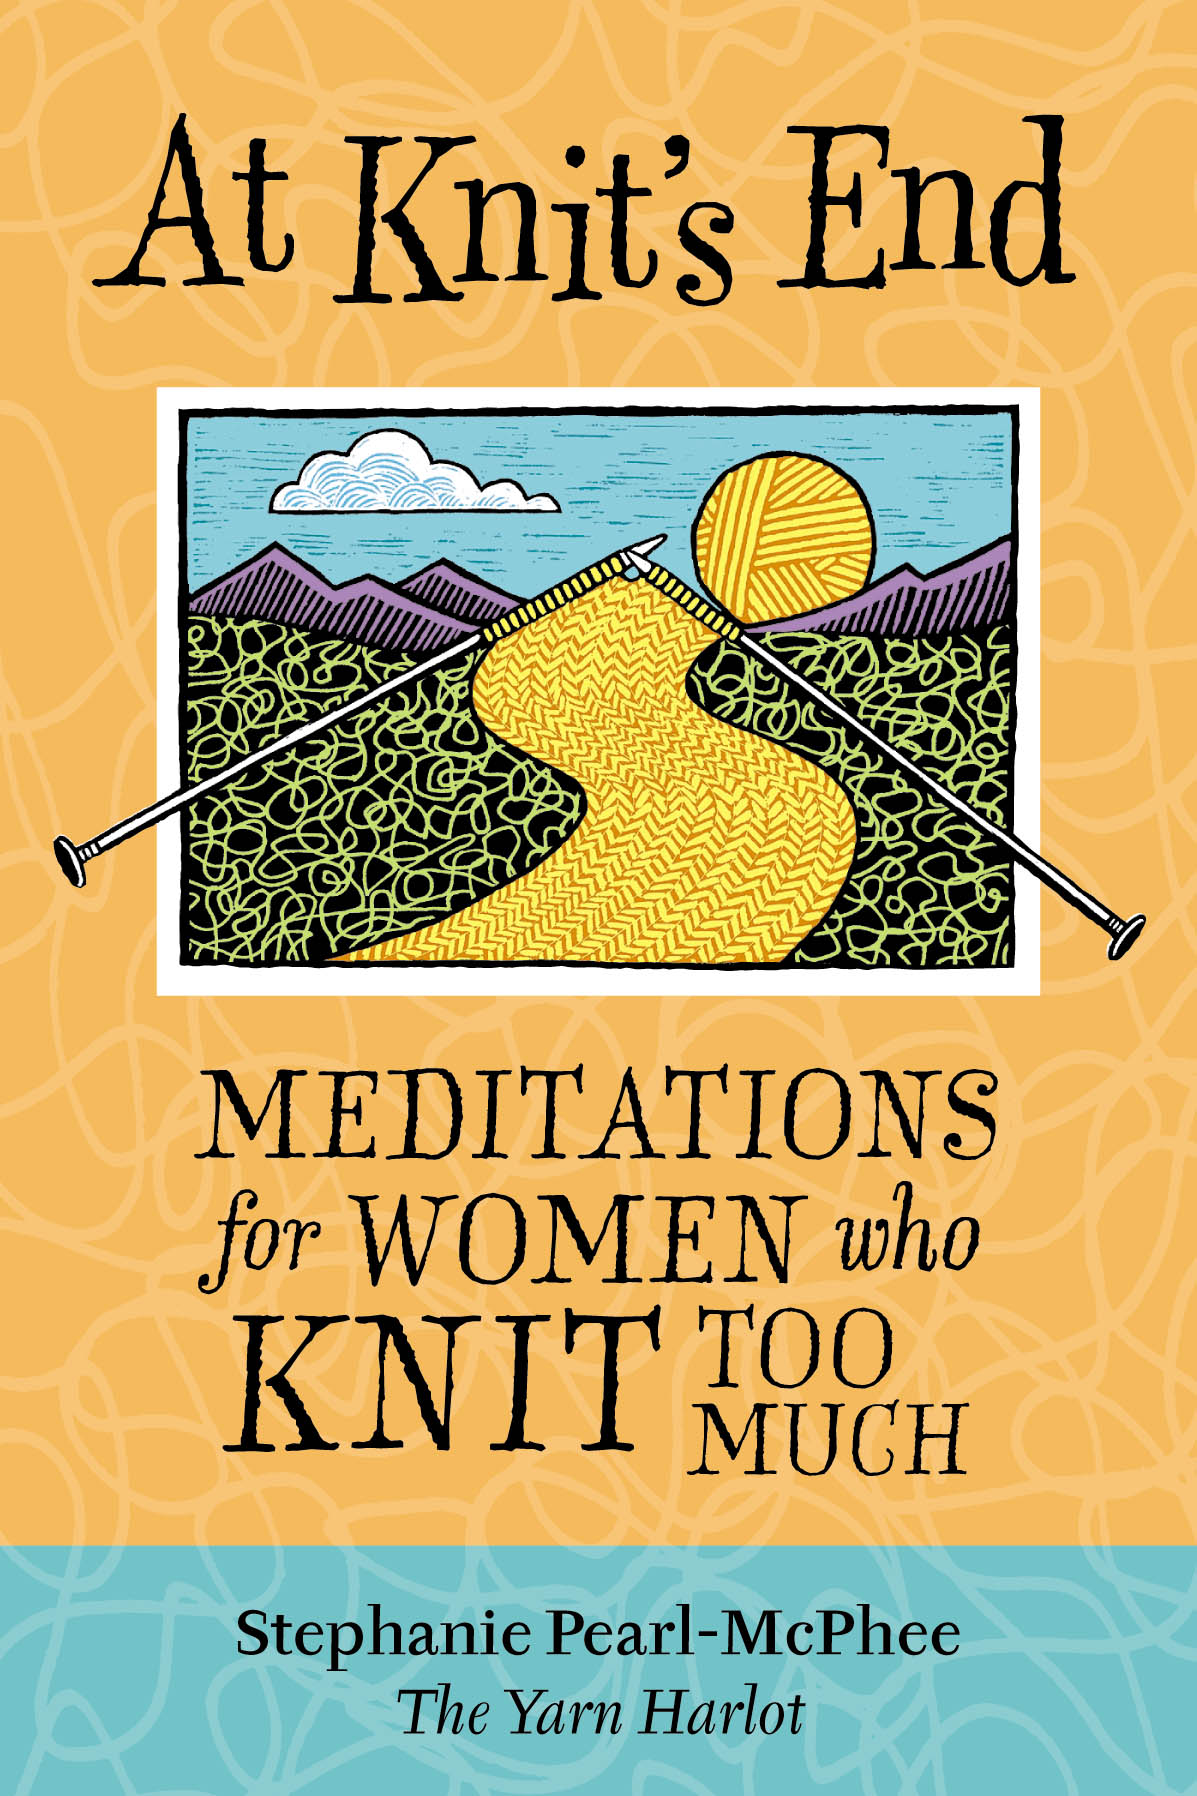 At Knit's End Meditations for Women Who Knit Too Much - Stephanie Pearl-McPhee